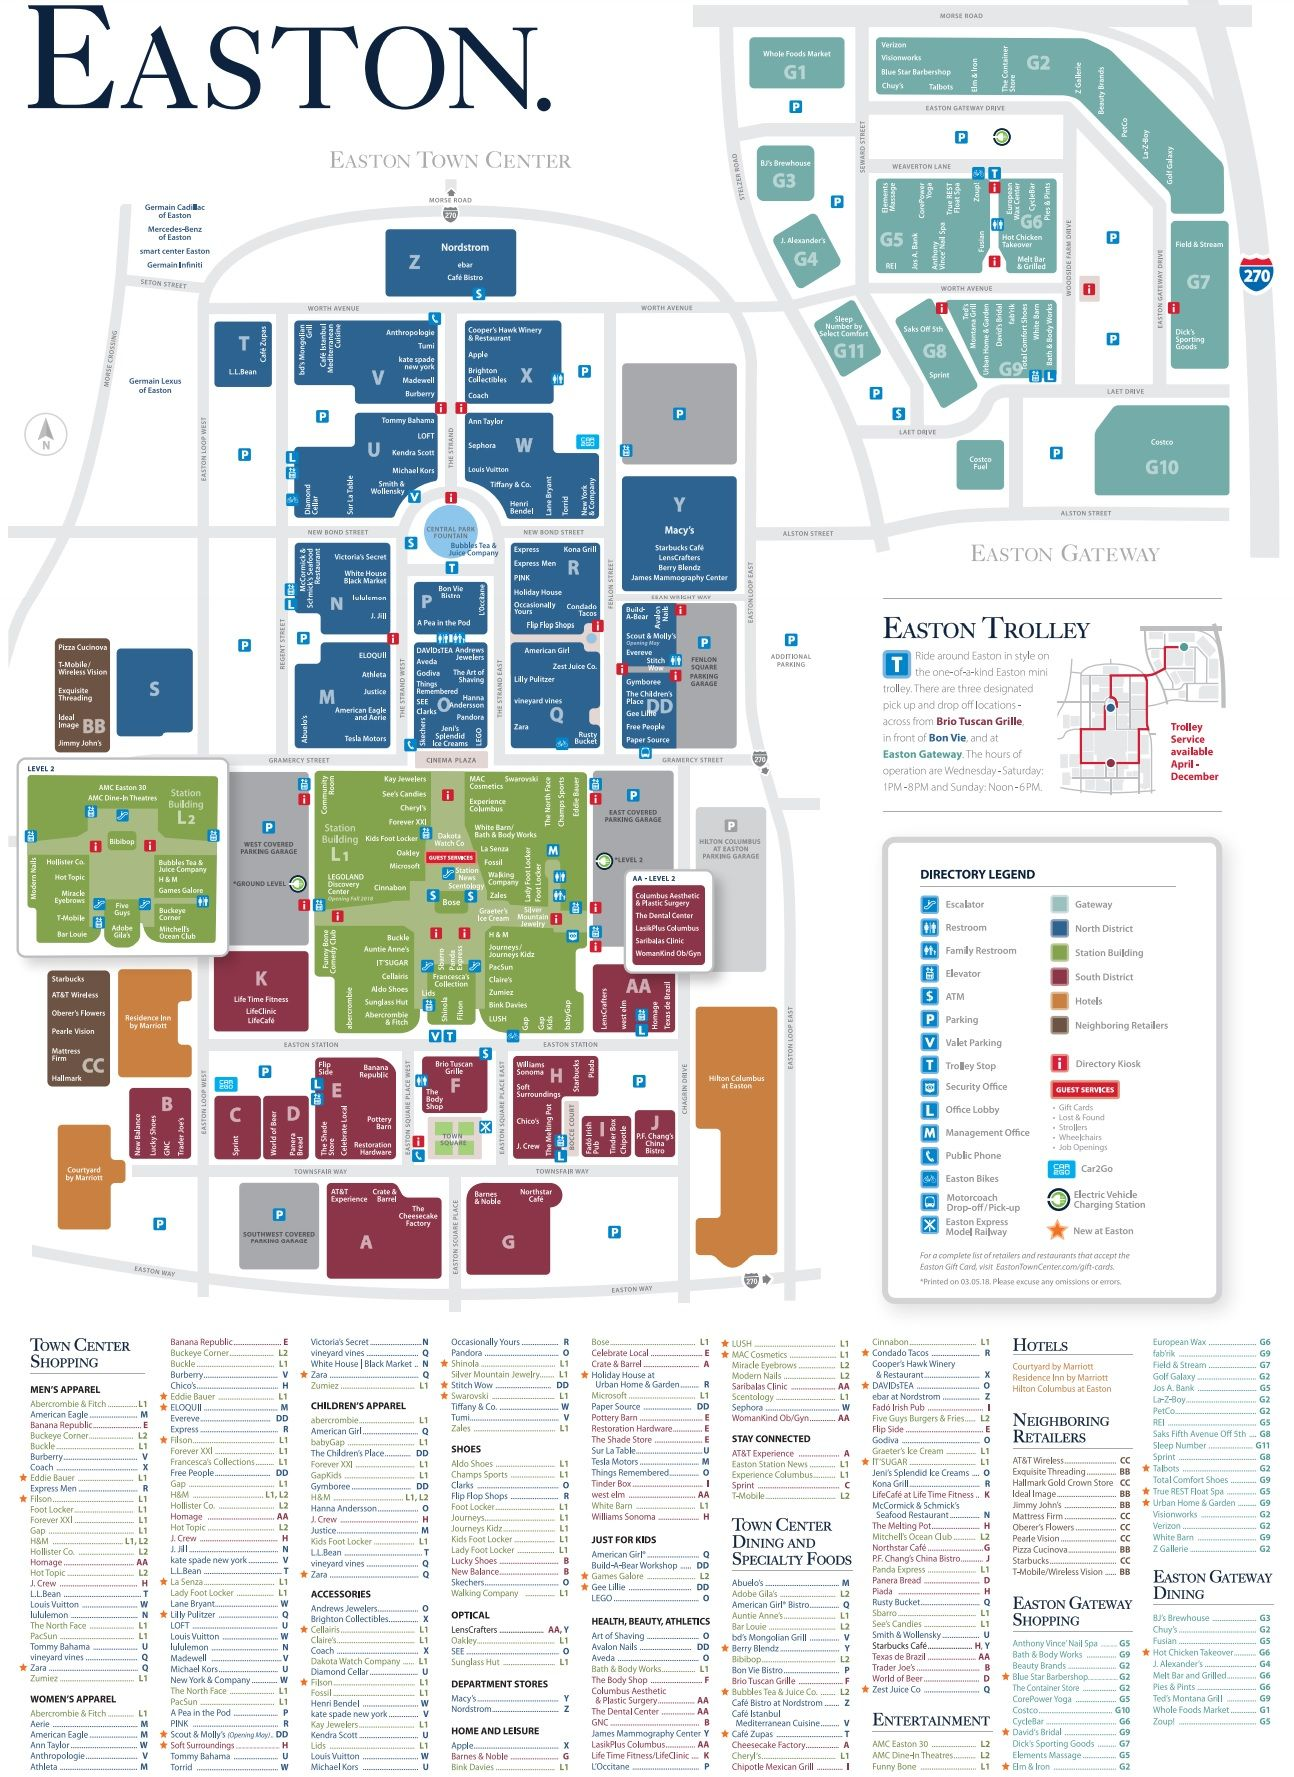 Easton Mall Map Easton Town Center shopping plan | Mall maps in 2019 | Easton town